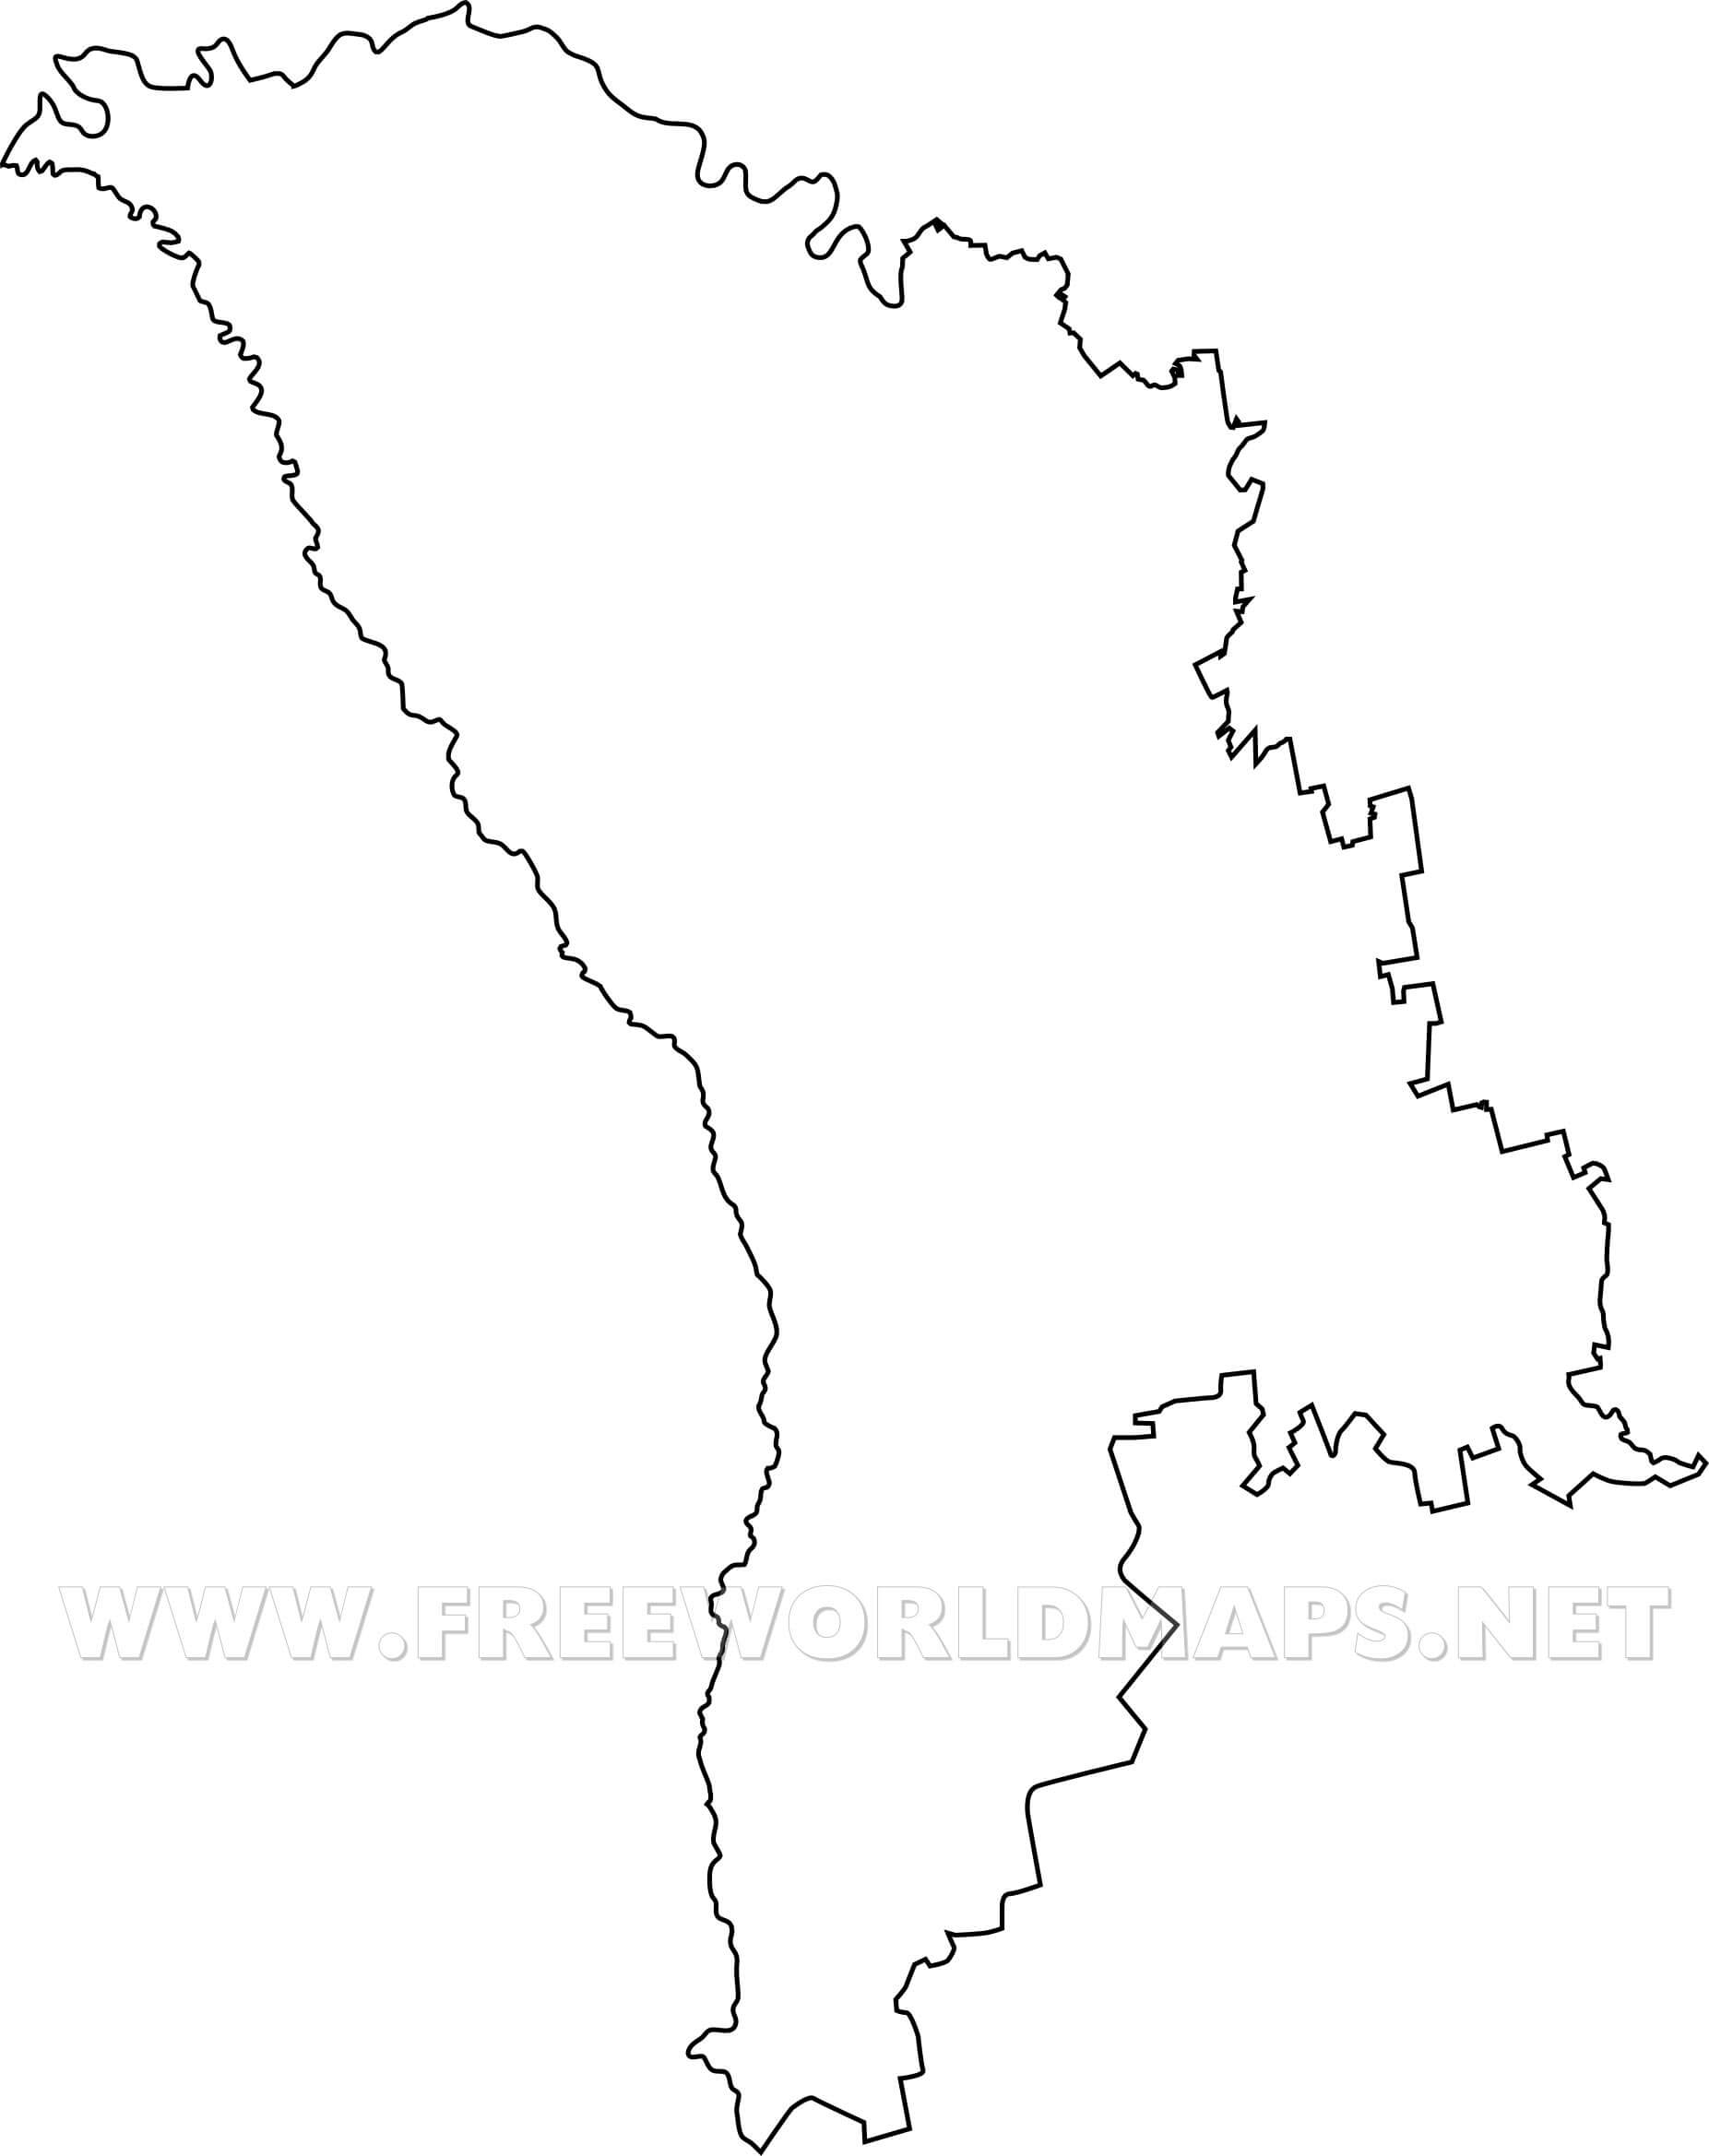 Moldova Maps By Freeworldmapsnet - Moldova map